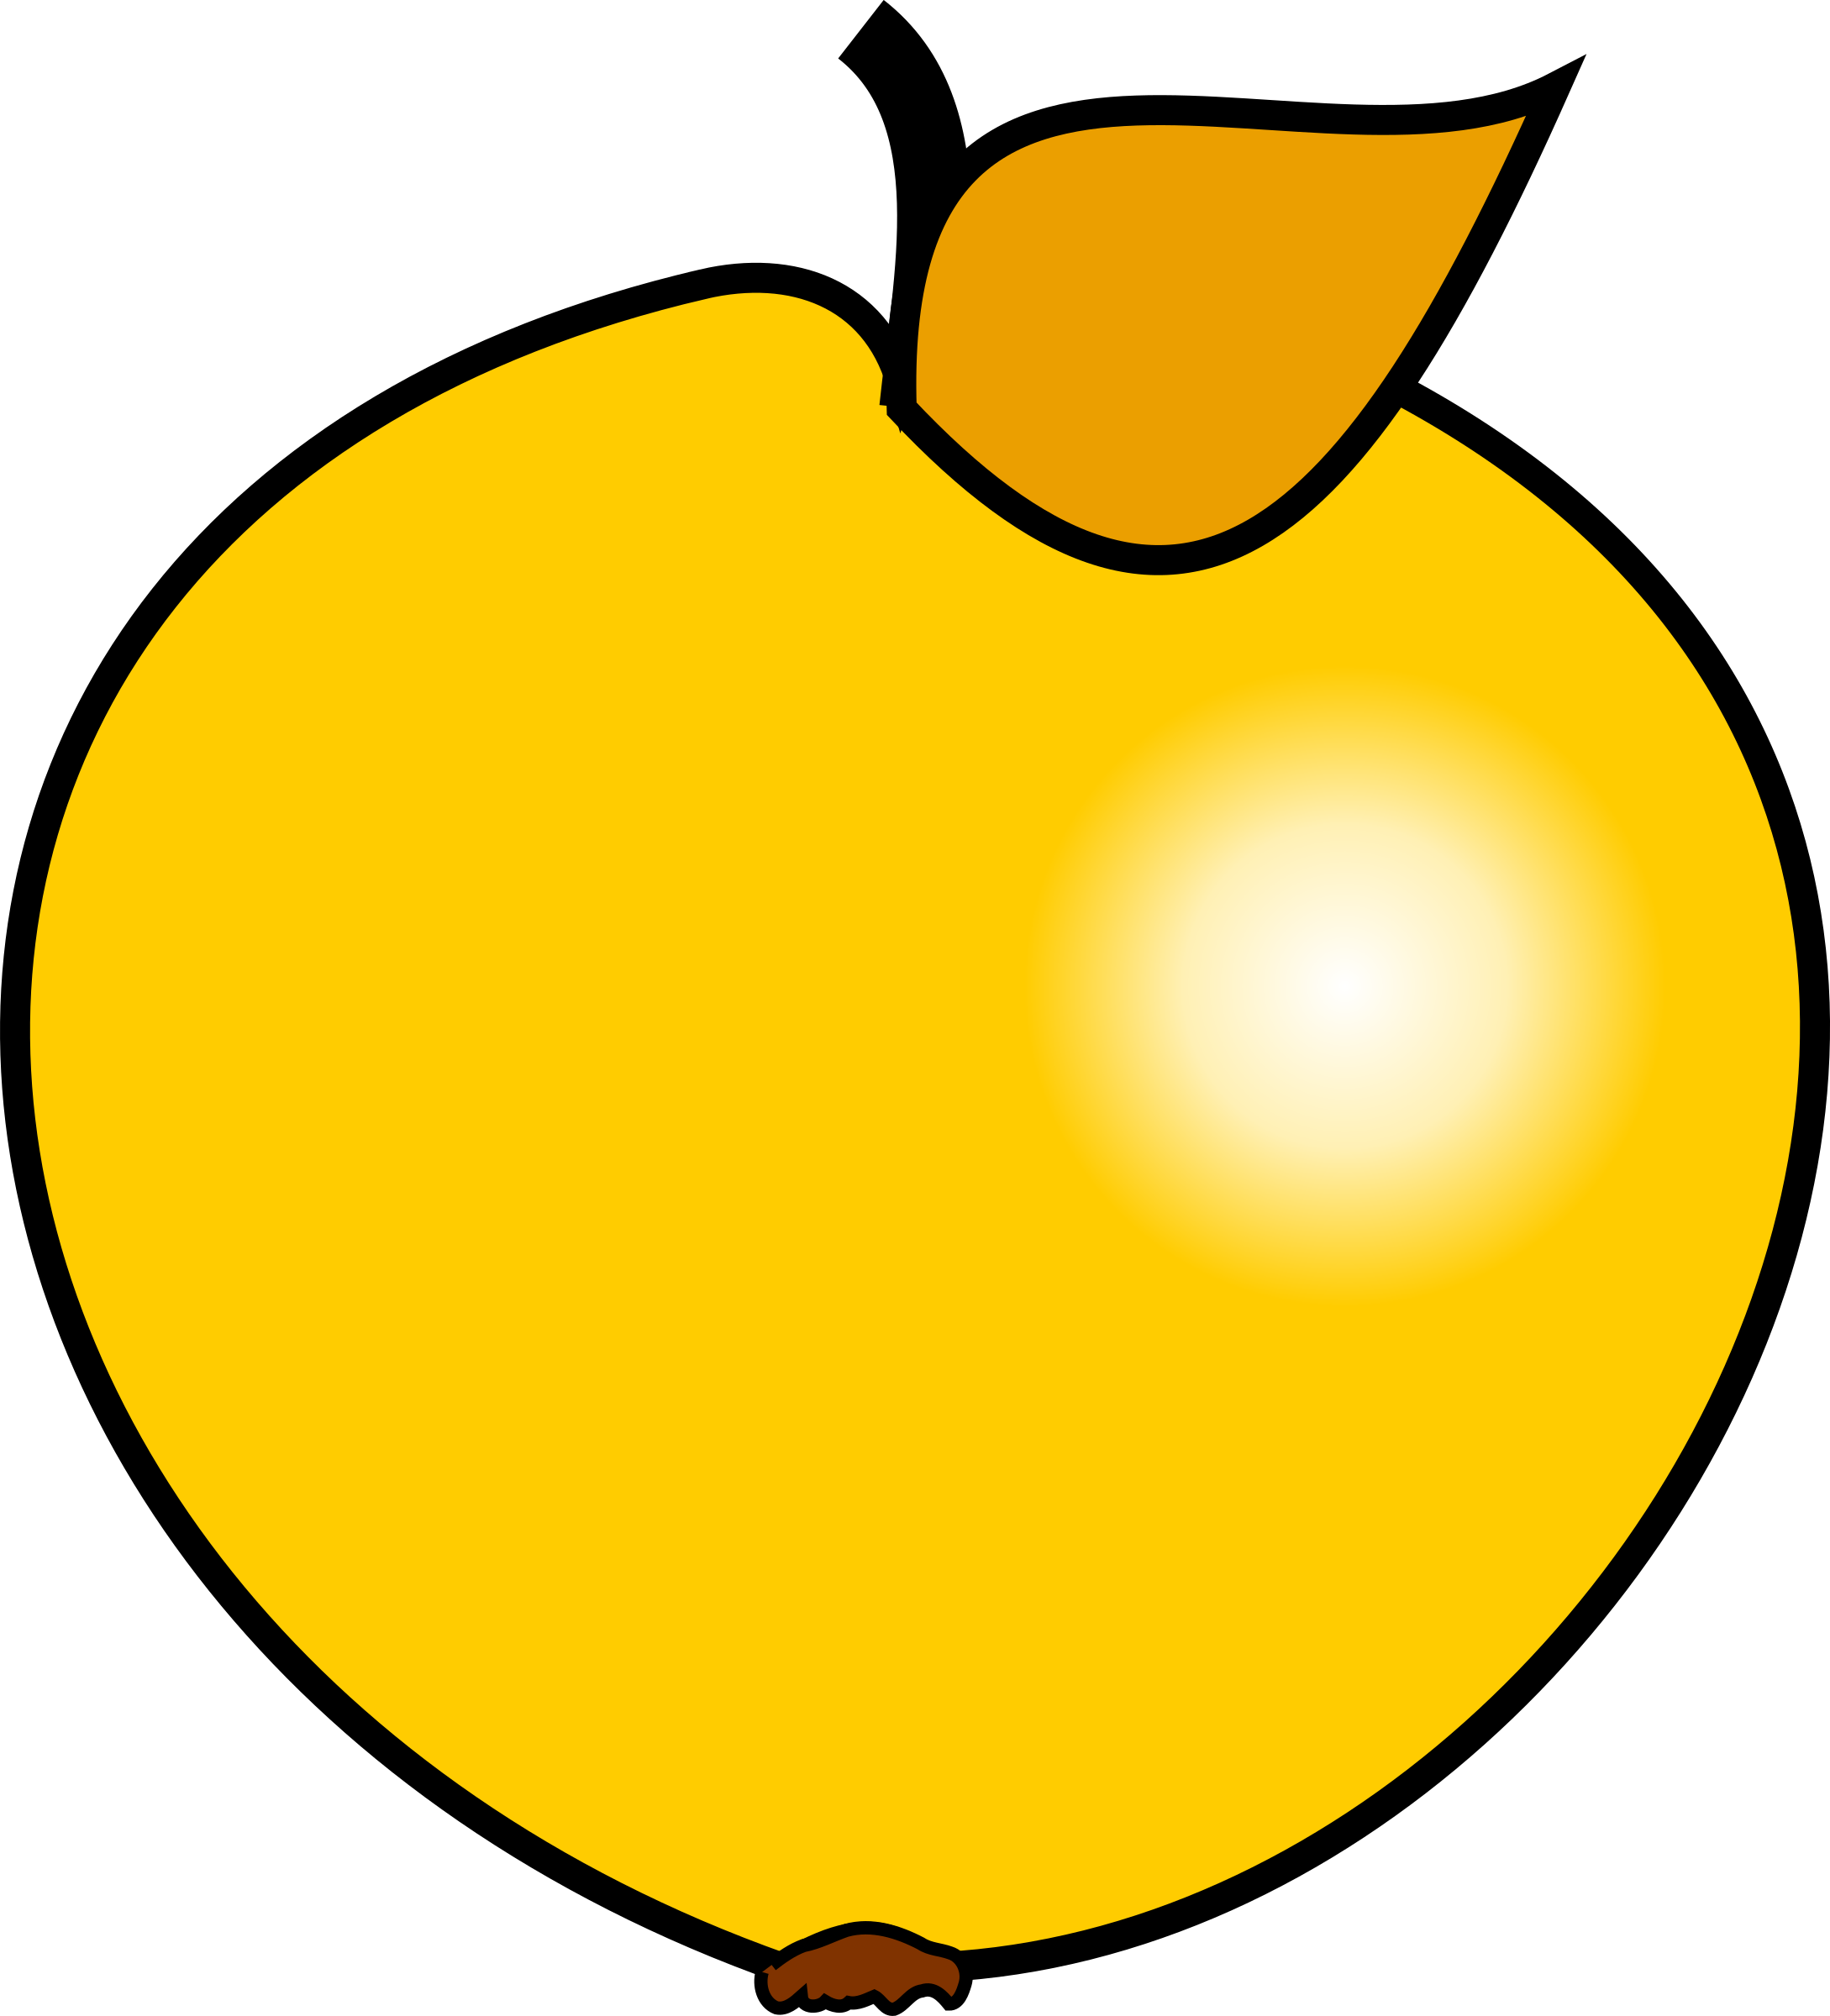 Minecraft golden apples png. Apple icons free and